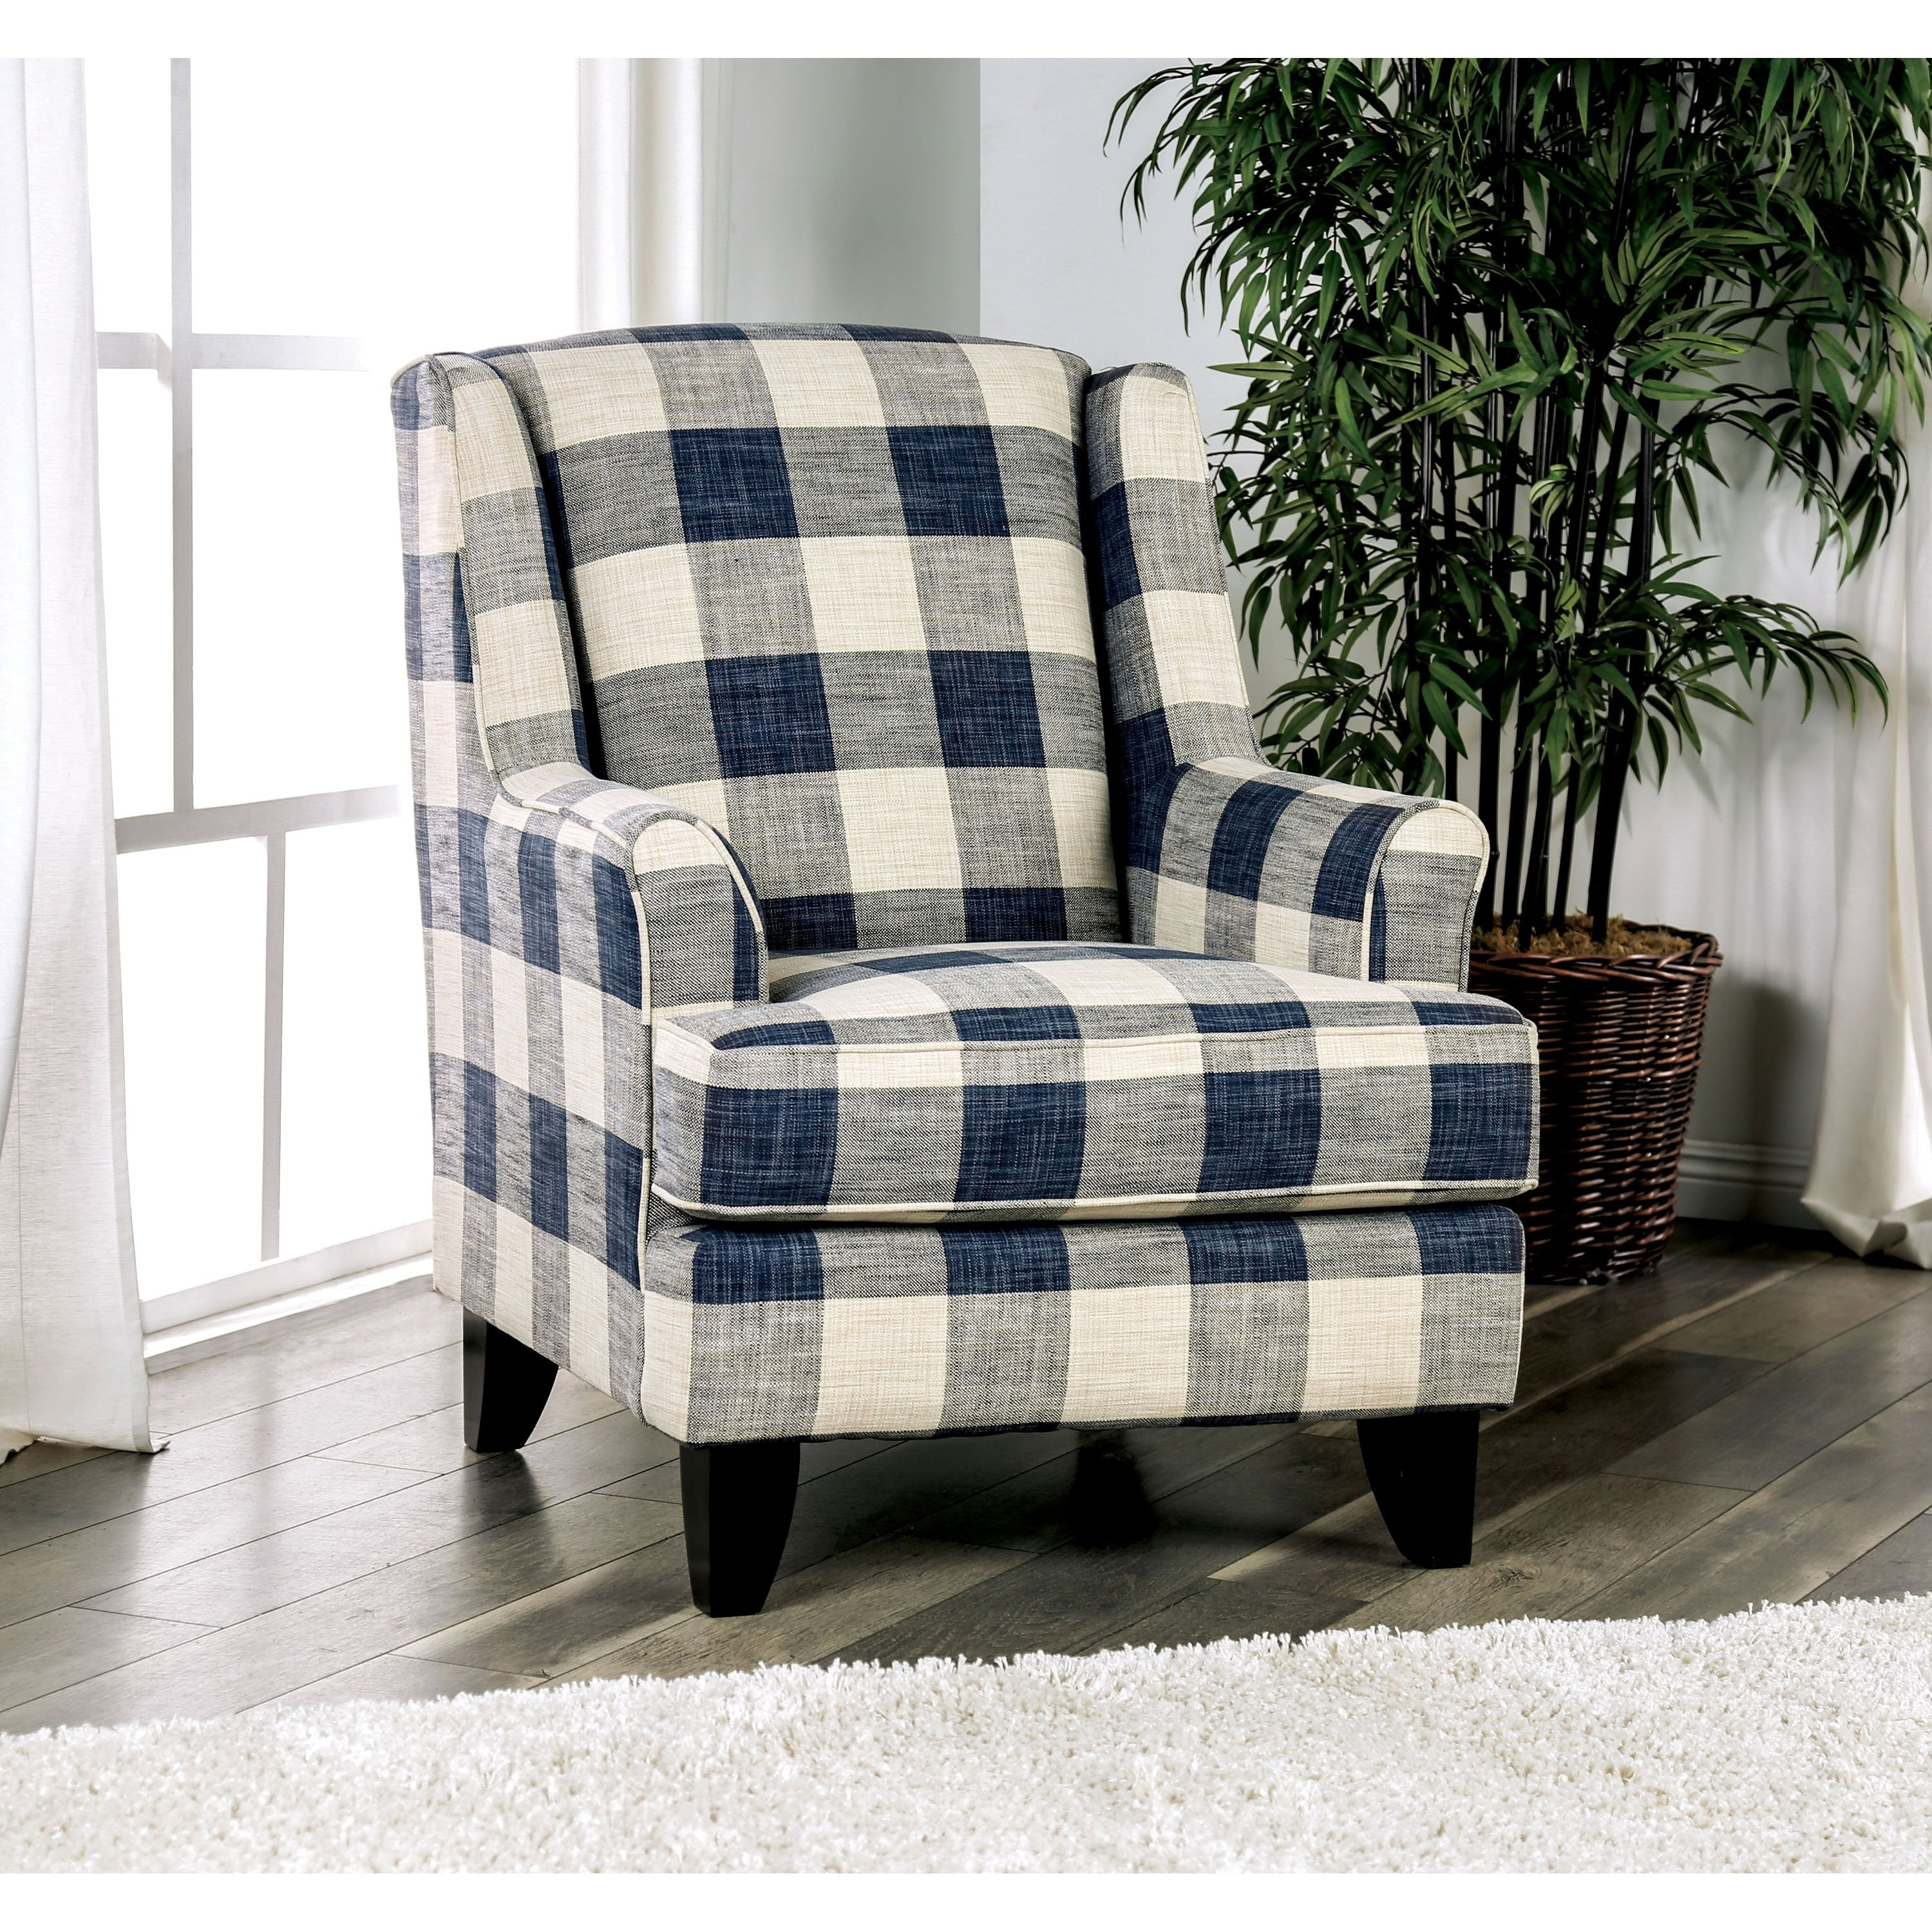 Best Mccallan Transitional Blue And White Plaid Accent Chair By 400 x 300